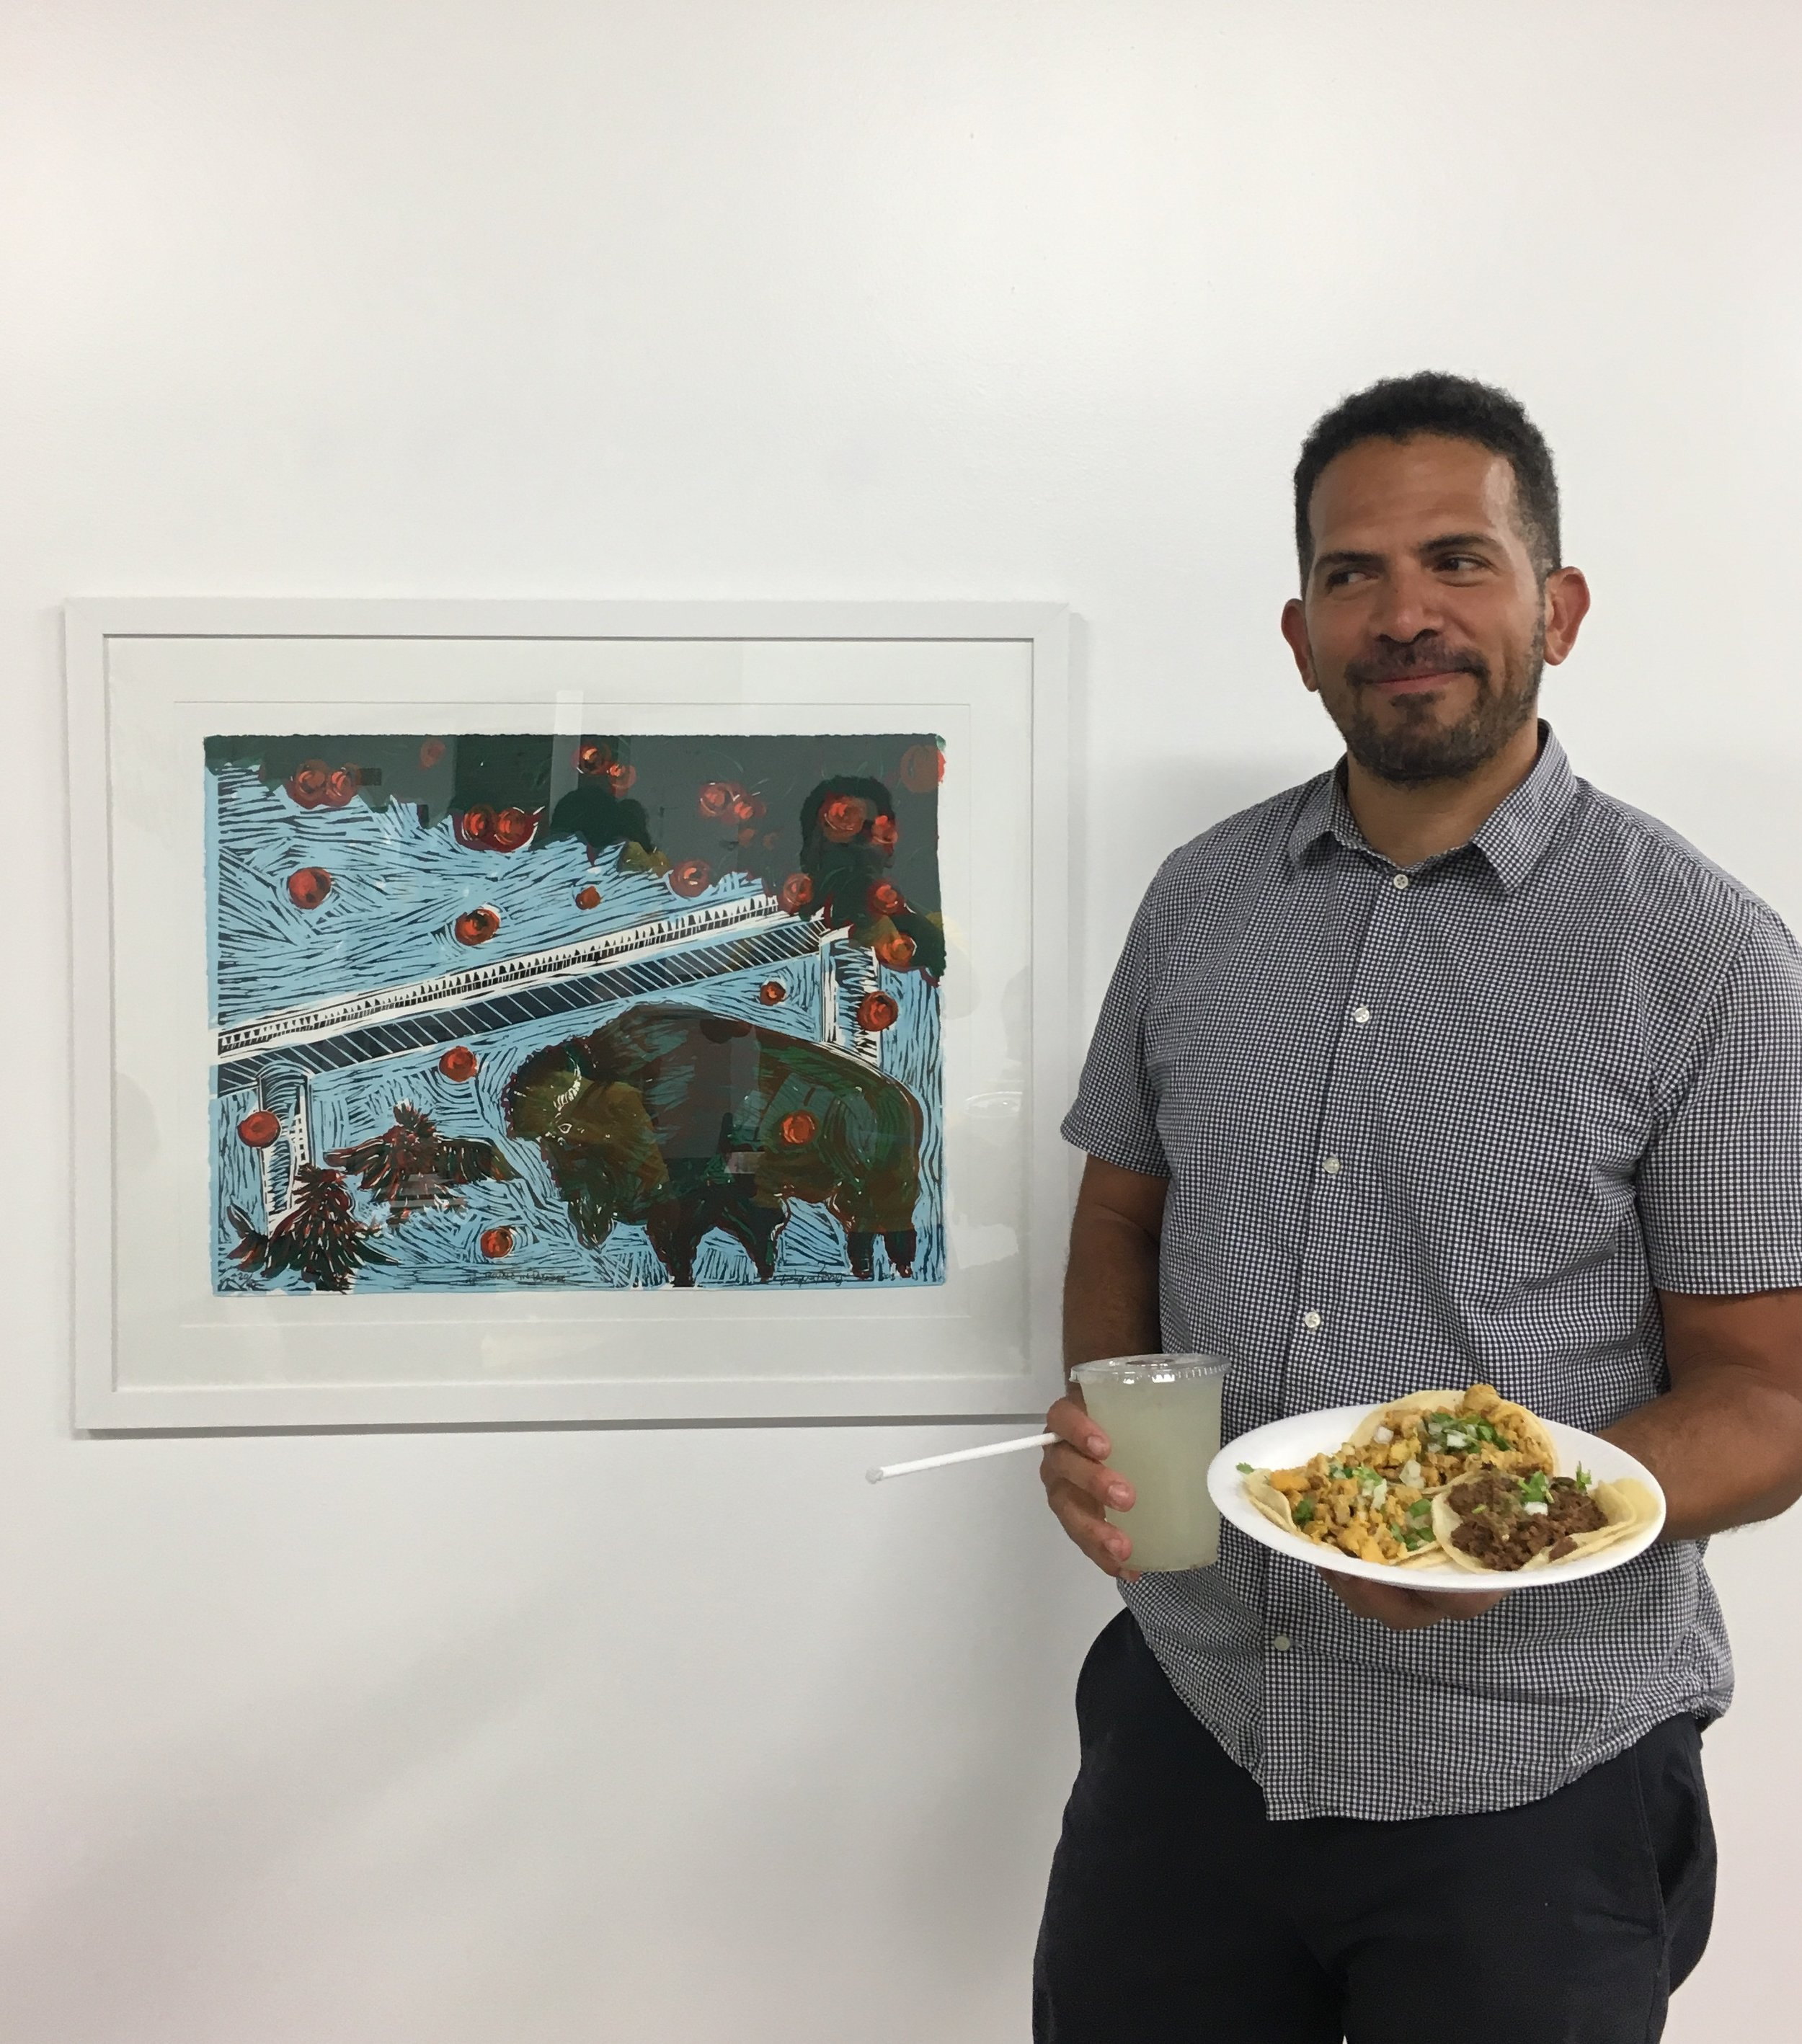 Artist Wayne Perry with tacos and drink, posing in front of  Trouble in Paradise.